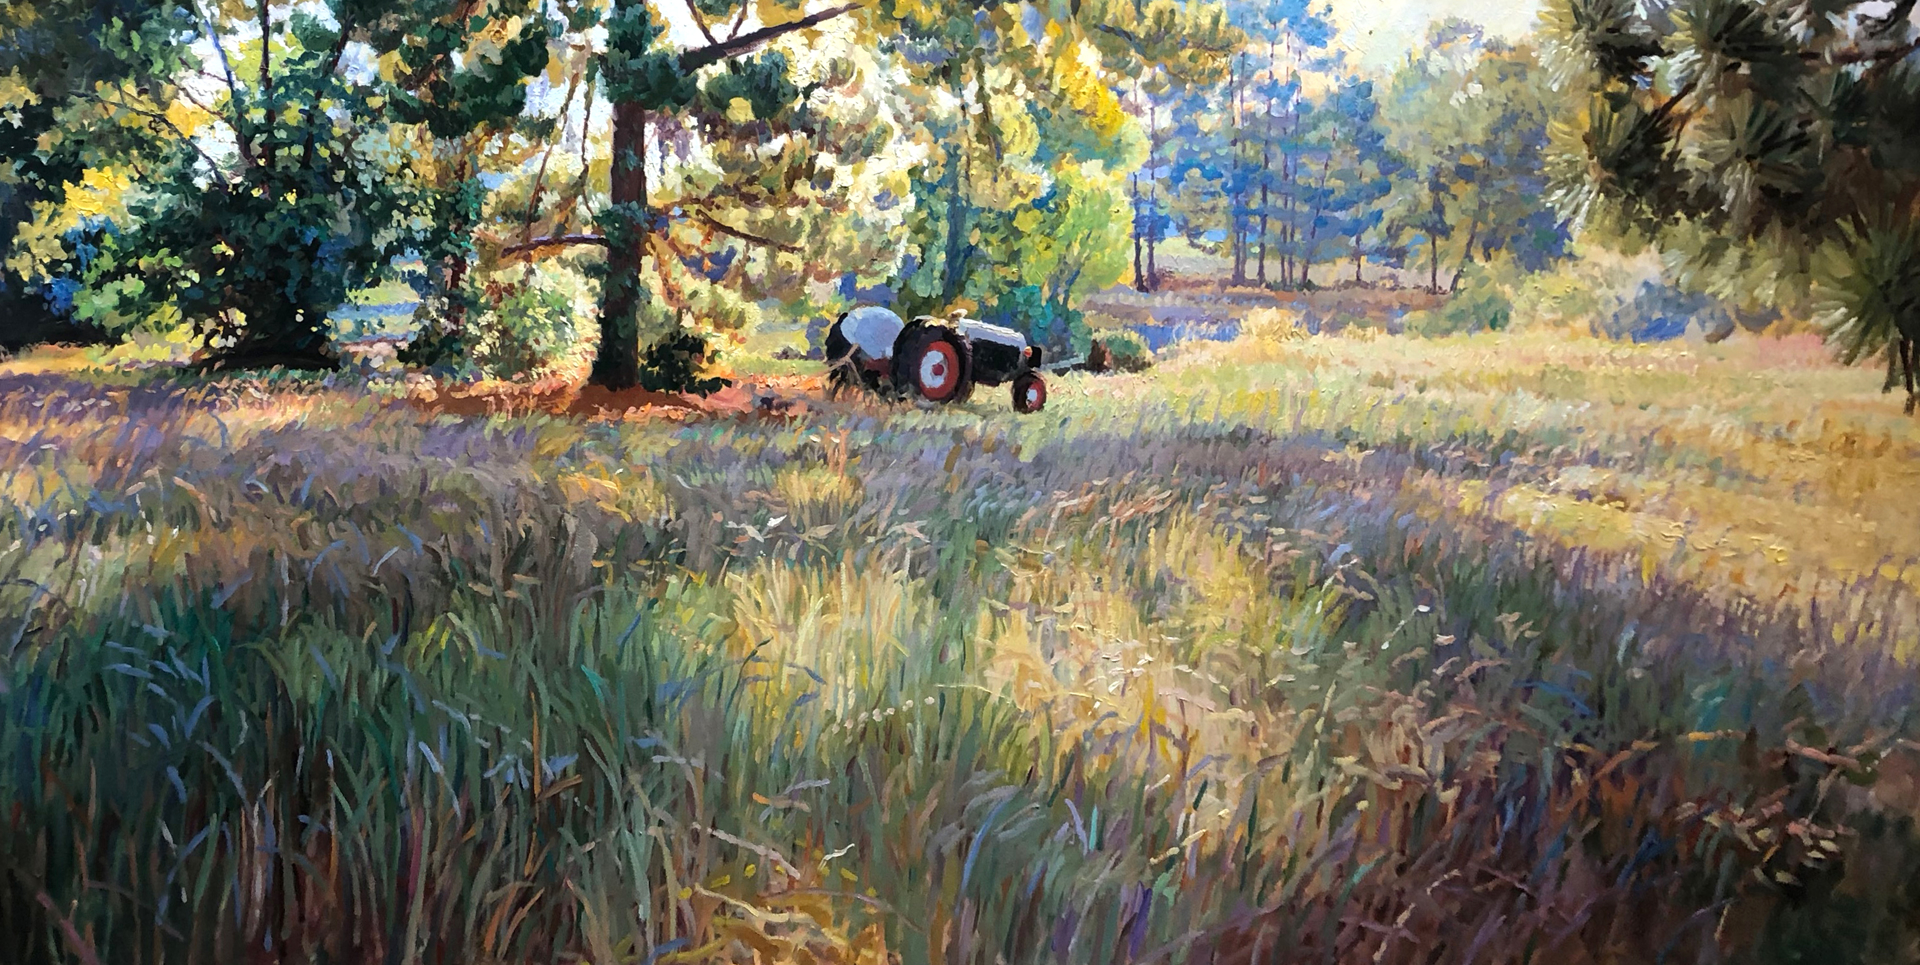 Splendor in the Grass by Lee Jamison